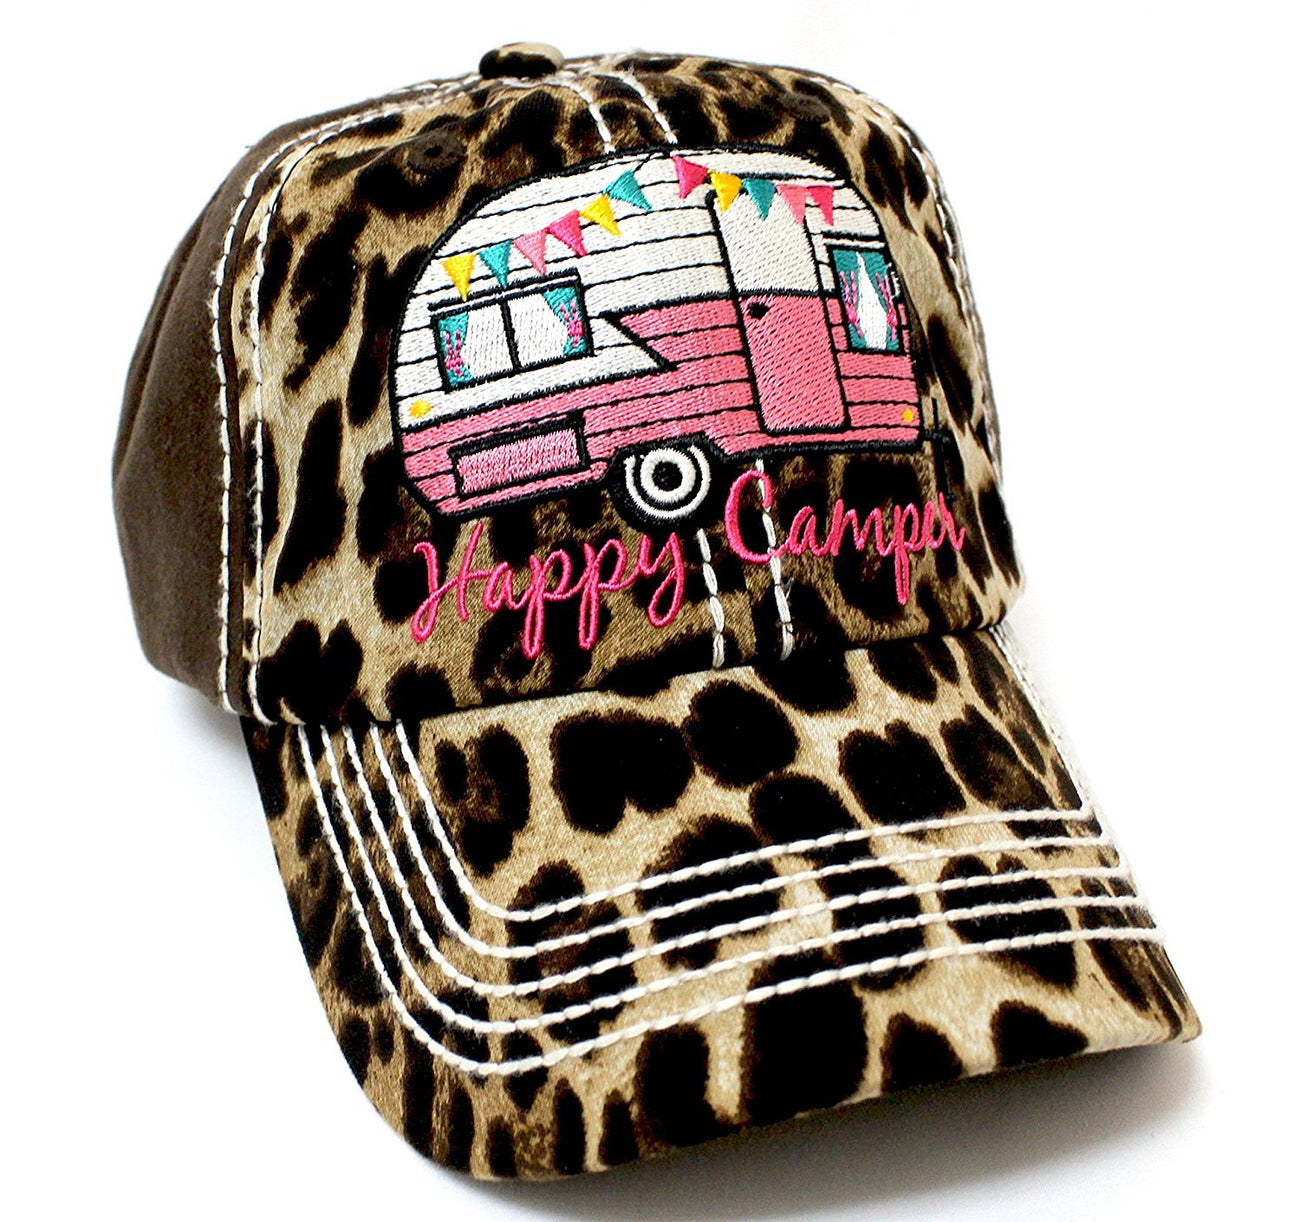 "BROWN & LEOPARD ""Happy Camper"" Embroidery Patch Vintage Hat - Caps 'N Vintage"